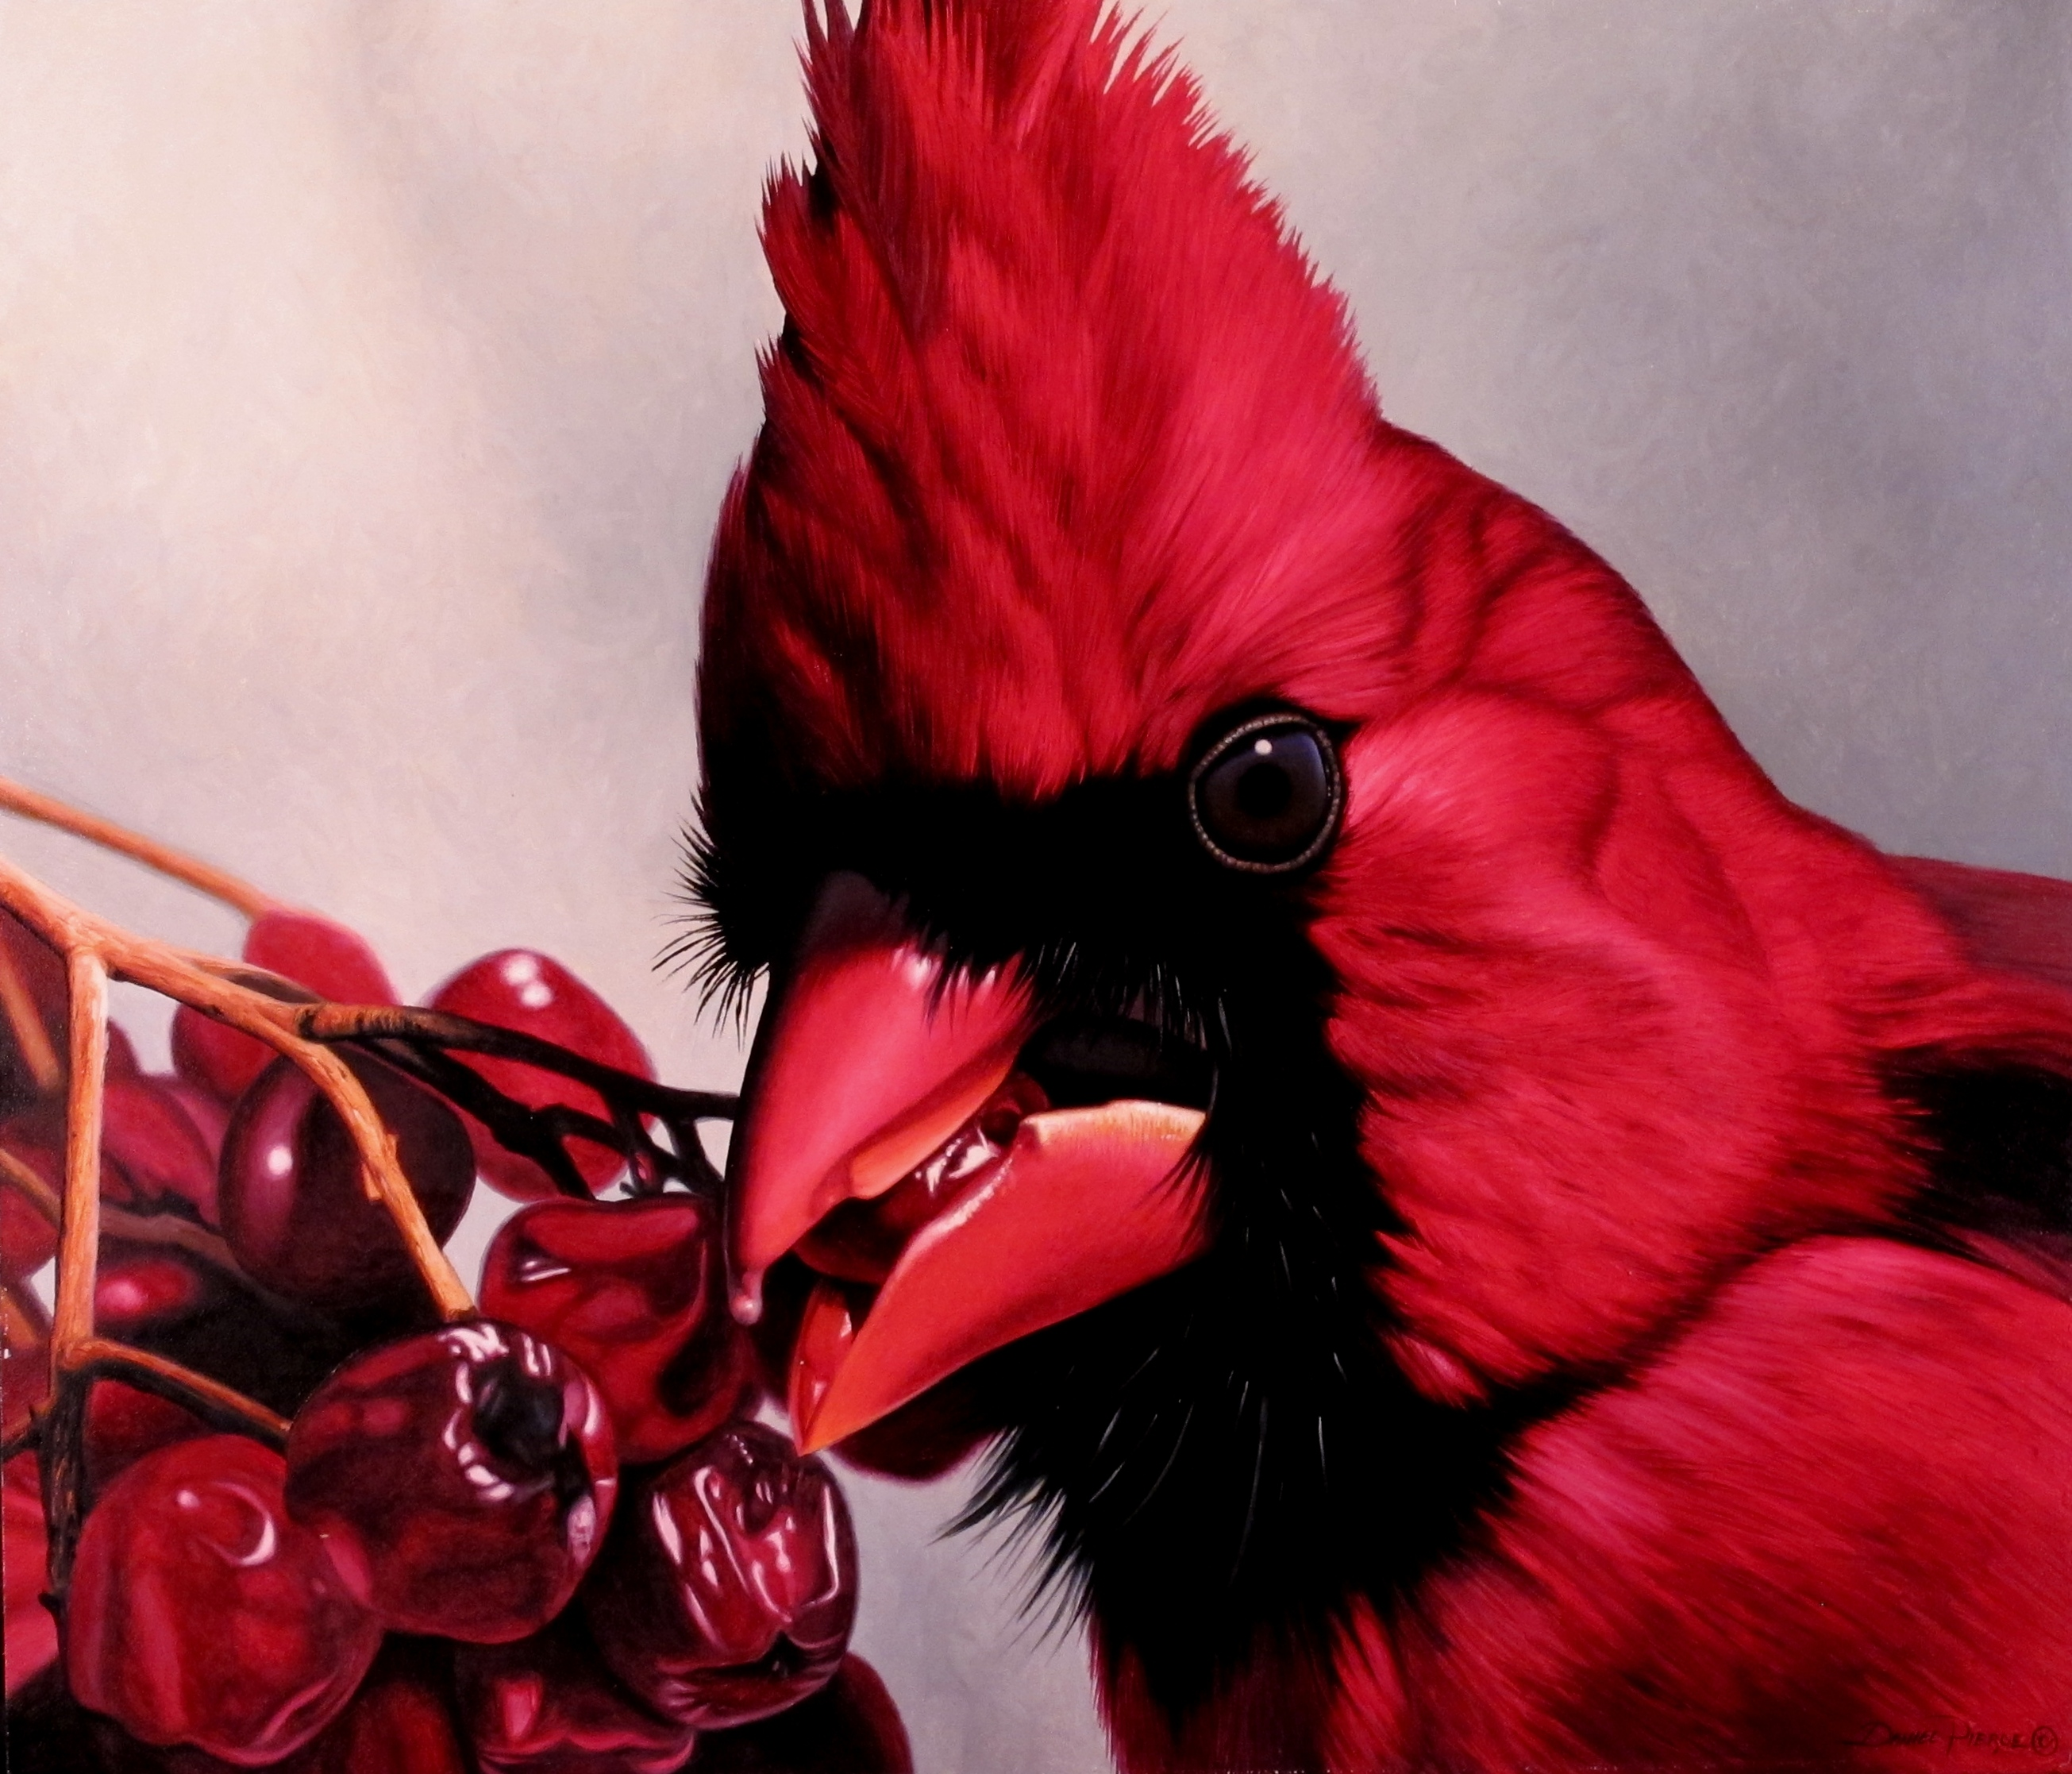 the red birds have a special meaning u2026 u201ccardinals u201d it is what